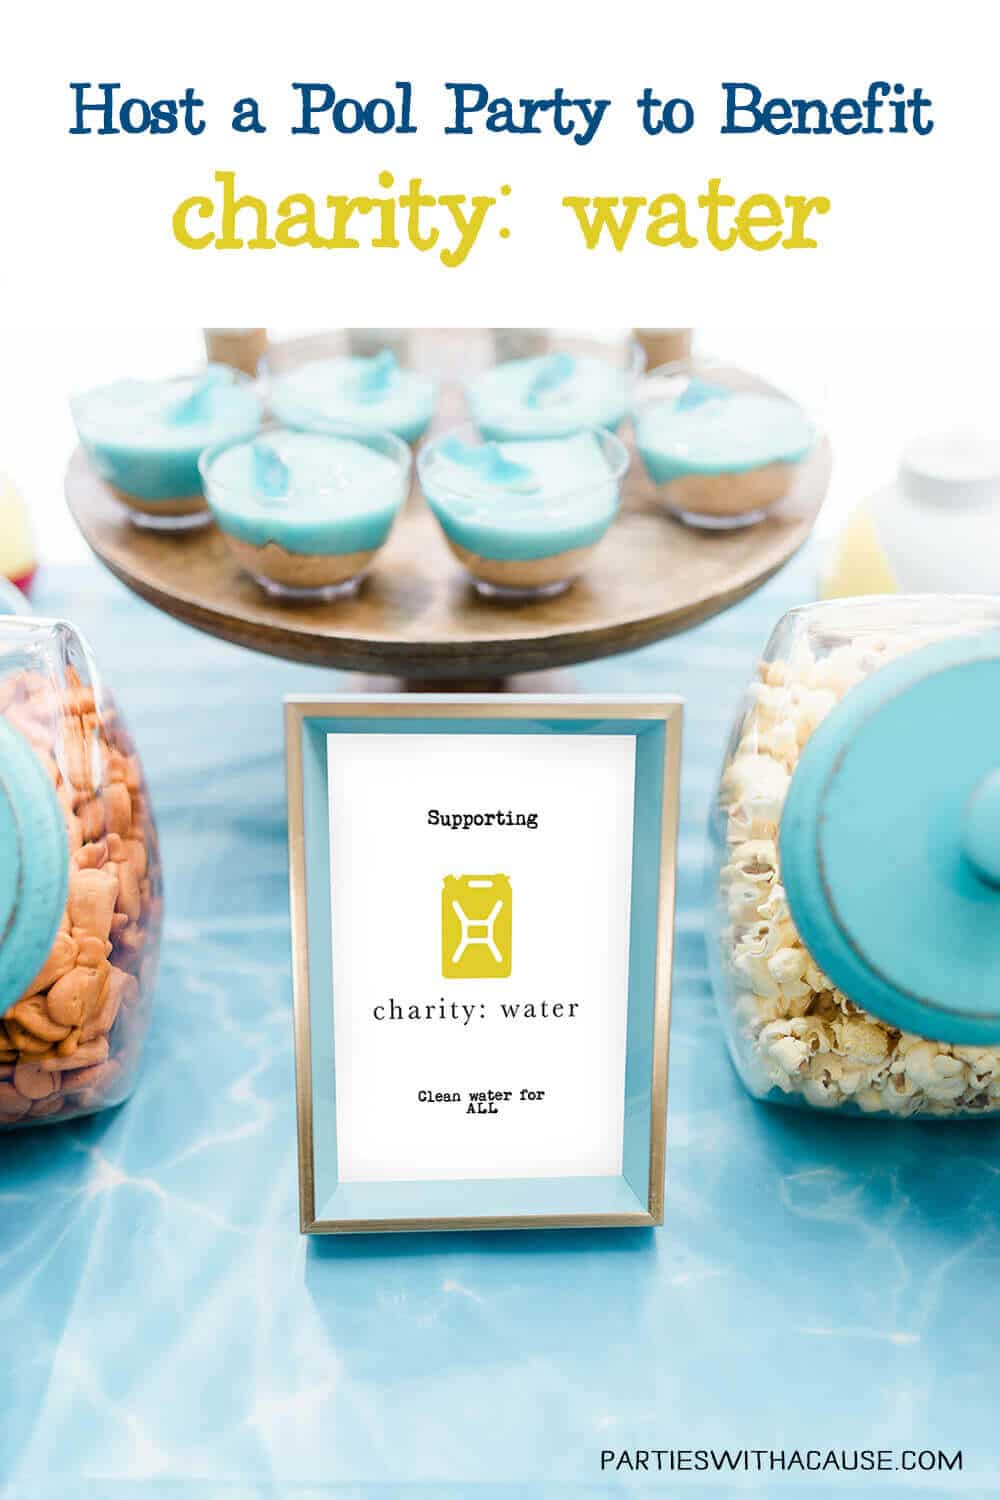 Pool party to benefit charity water